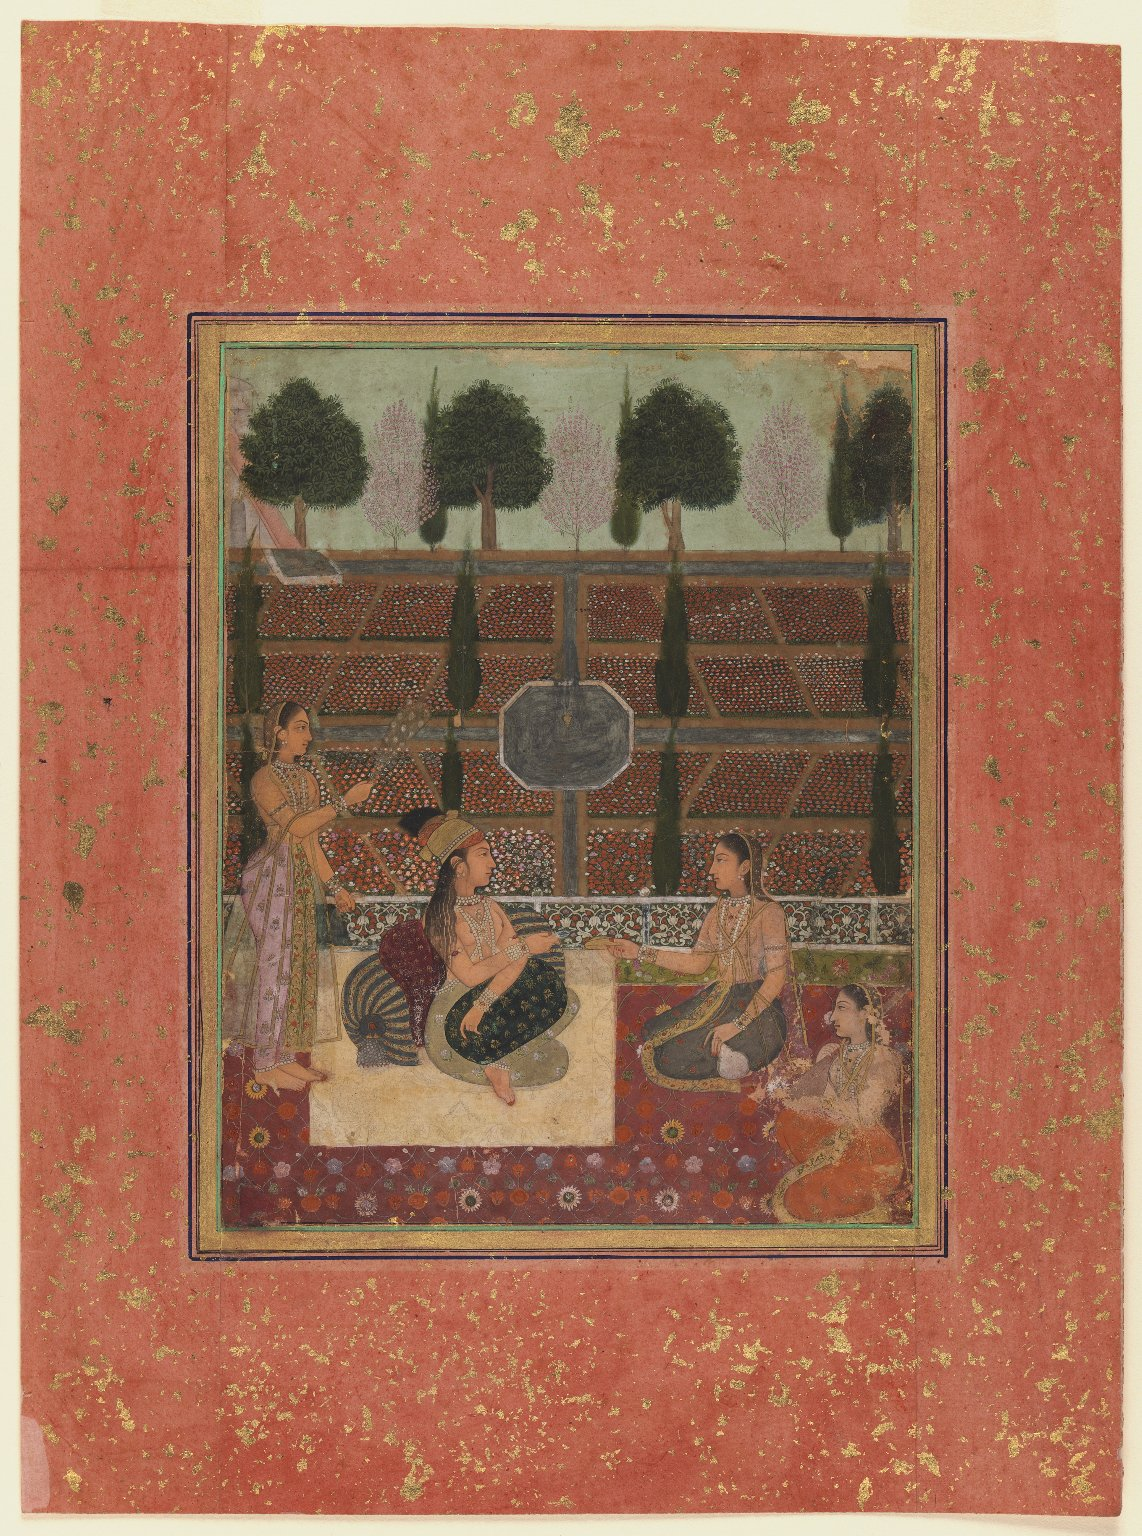 A Hindu lady and Three of her Attendants are on a Terrace - Mughal Painting Circa 1700-1710